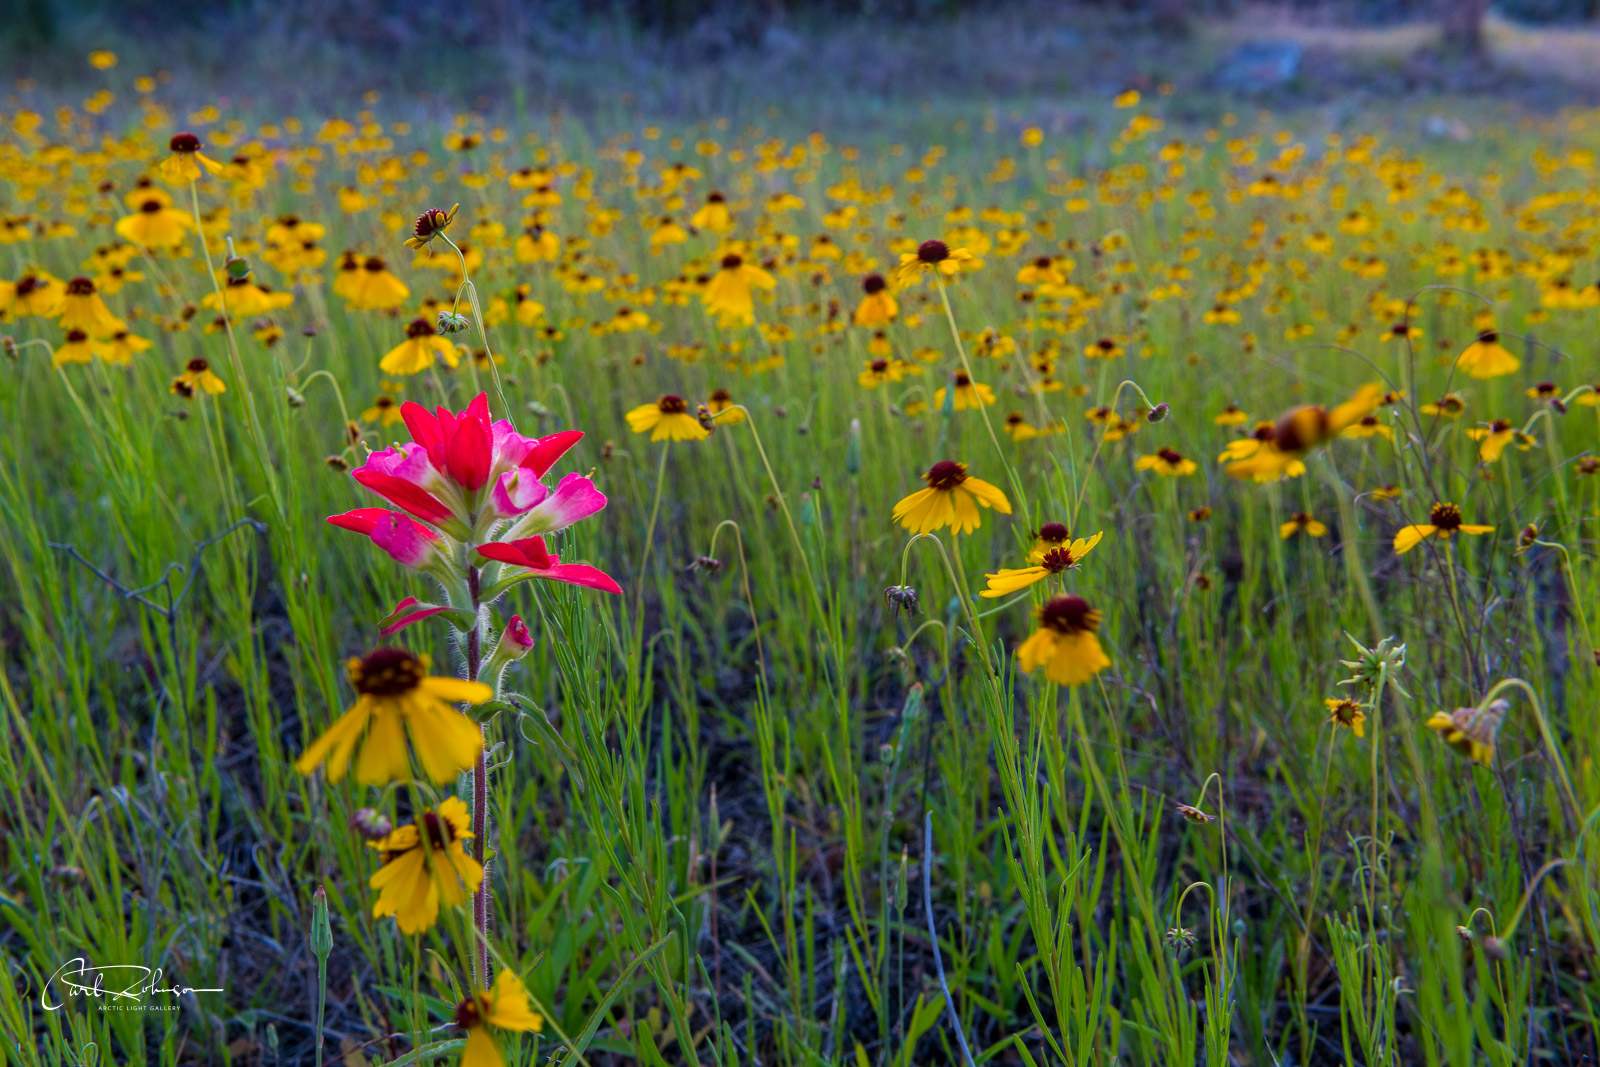 A field of brown-eyed Susan flowers catch a pop of red from a lone Indian paintbrush flower near Park Road 4 in Texas.